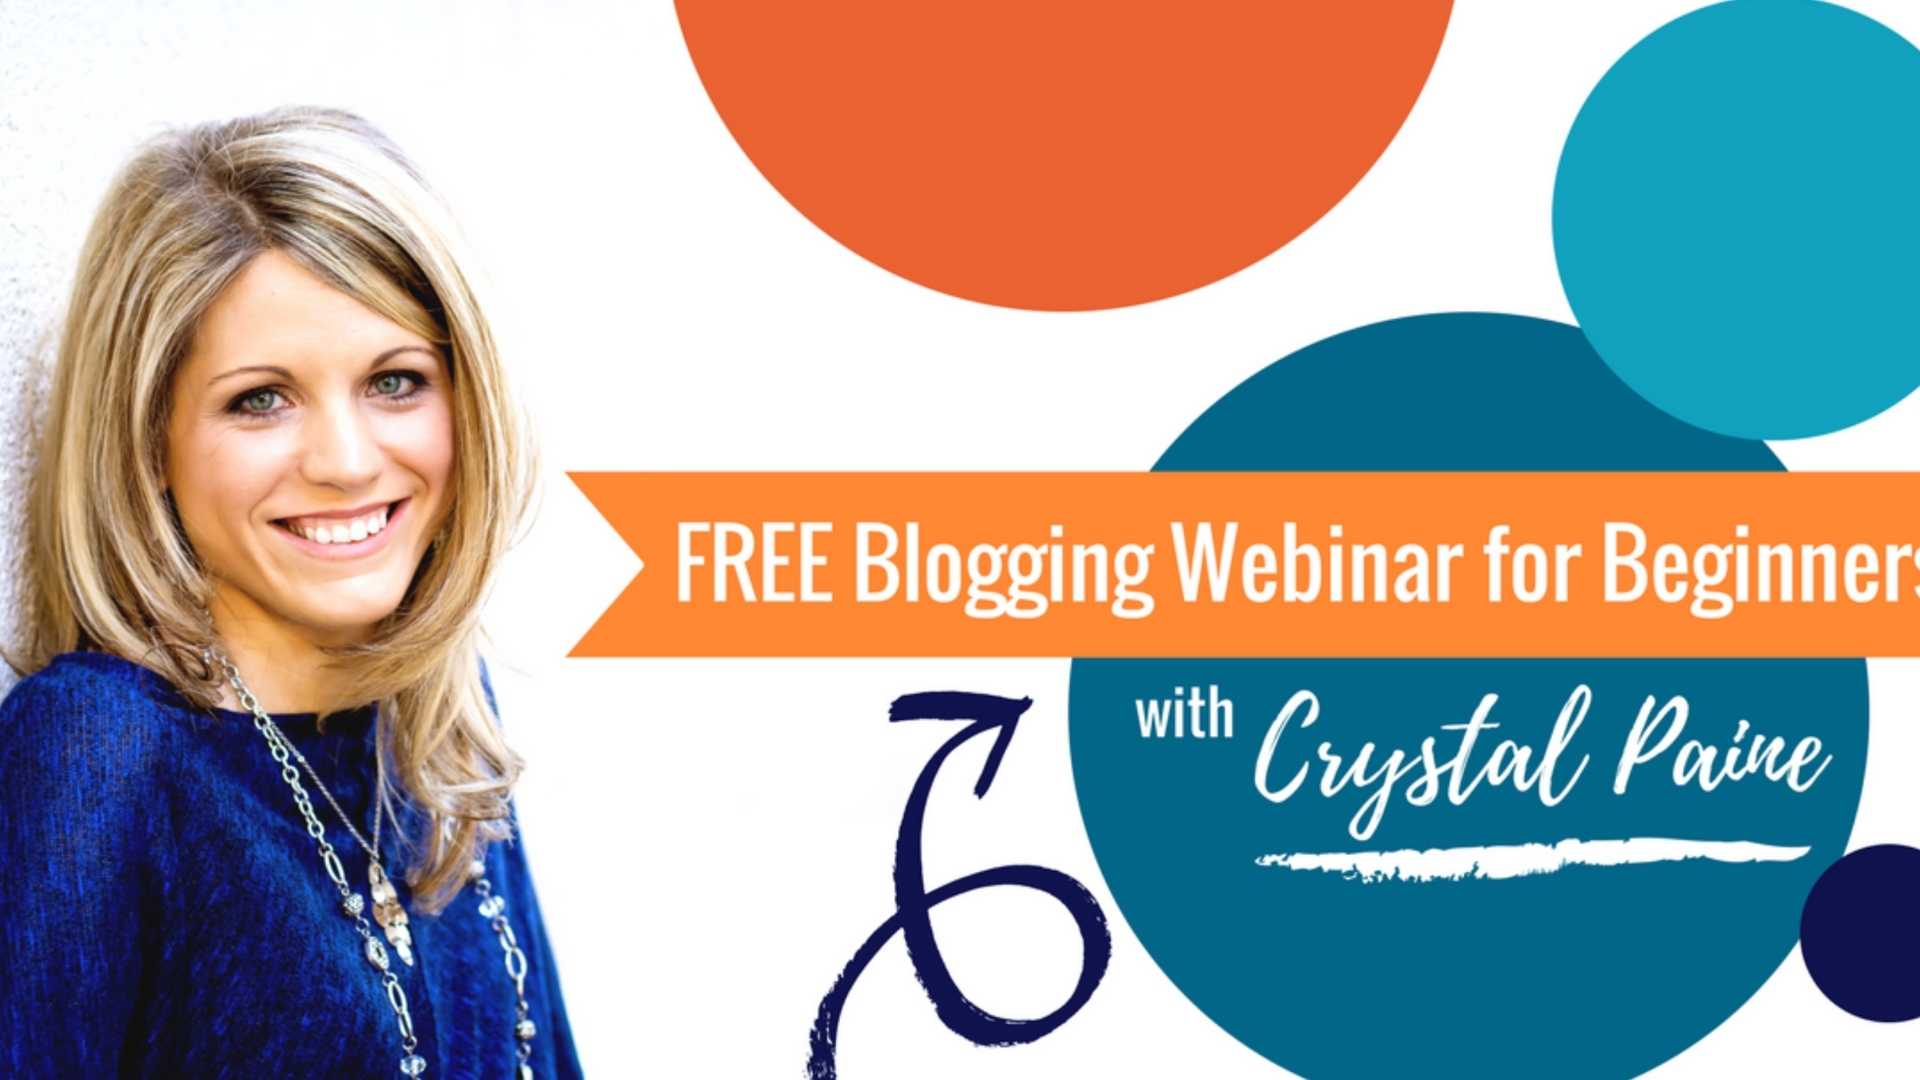 3 Steps to Start that Blog You've Been Dreaming Of (Evergreen Webinar)